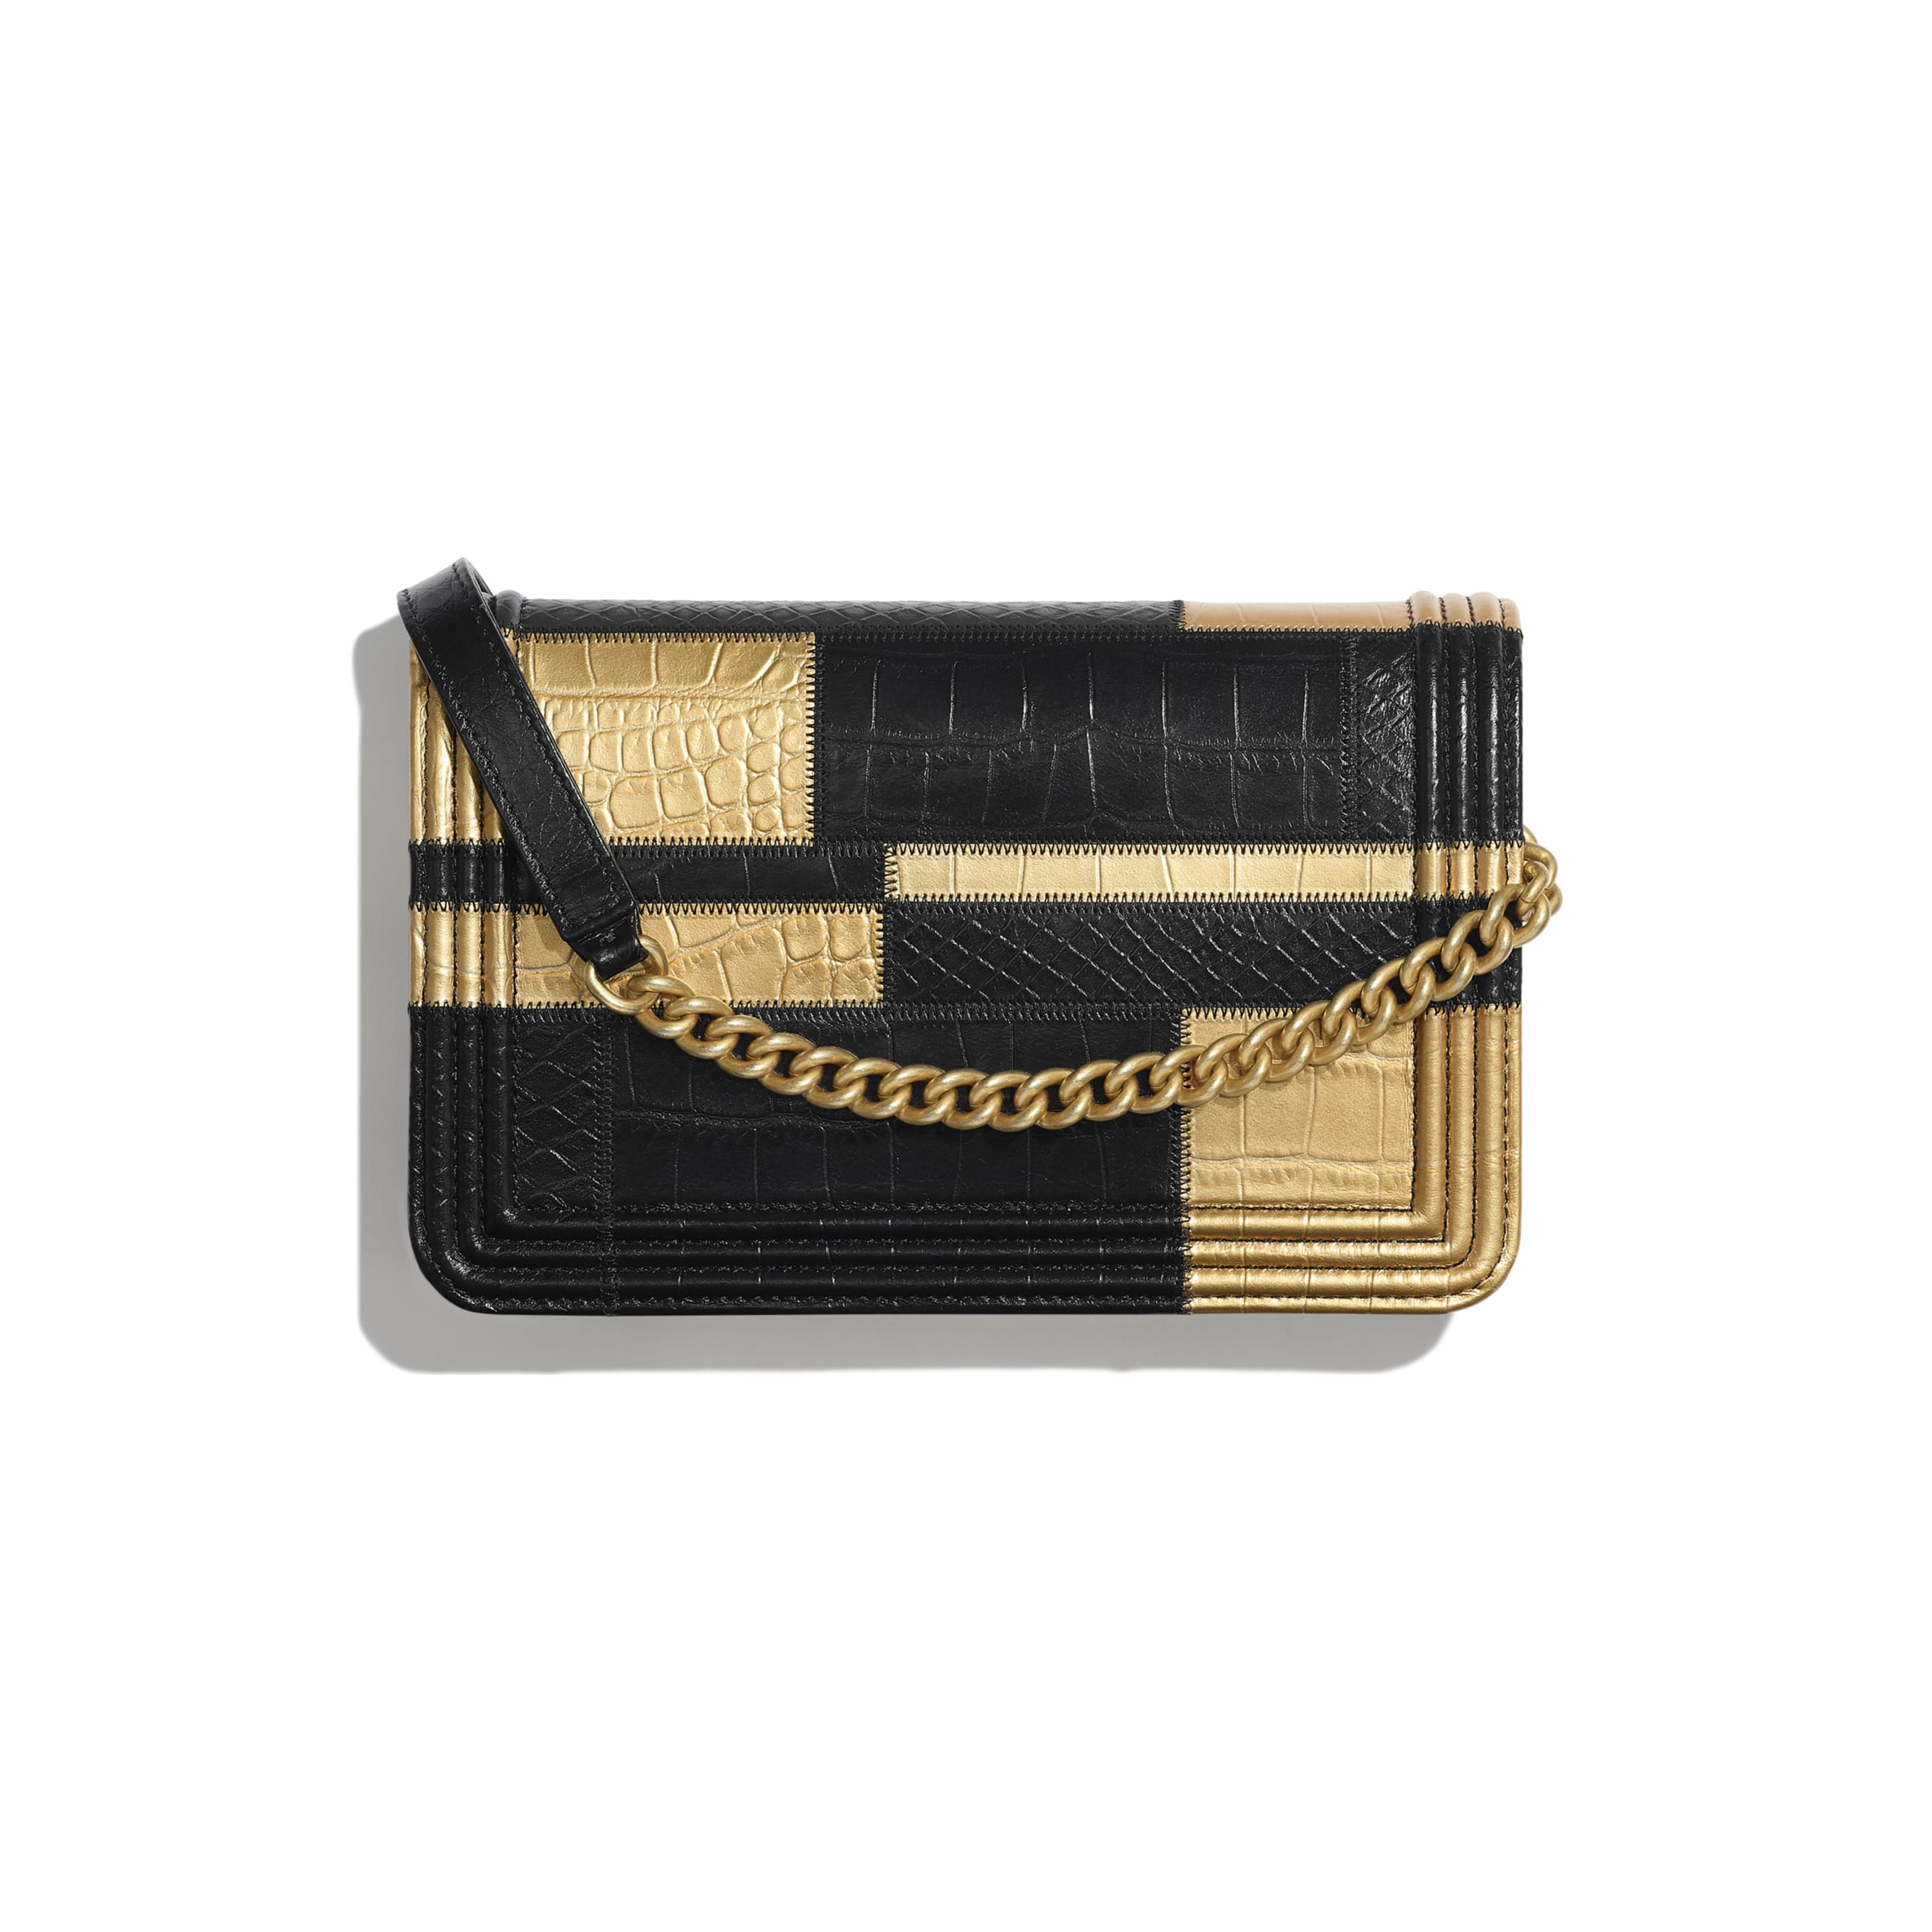 BOY CHANEL Wallet on Chain - Black & Gold - Crocodile Embossed Calfskin, Python Embossed Calfskin & Gold-Tone Metal - Alternative view - see standard sized version